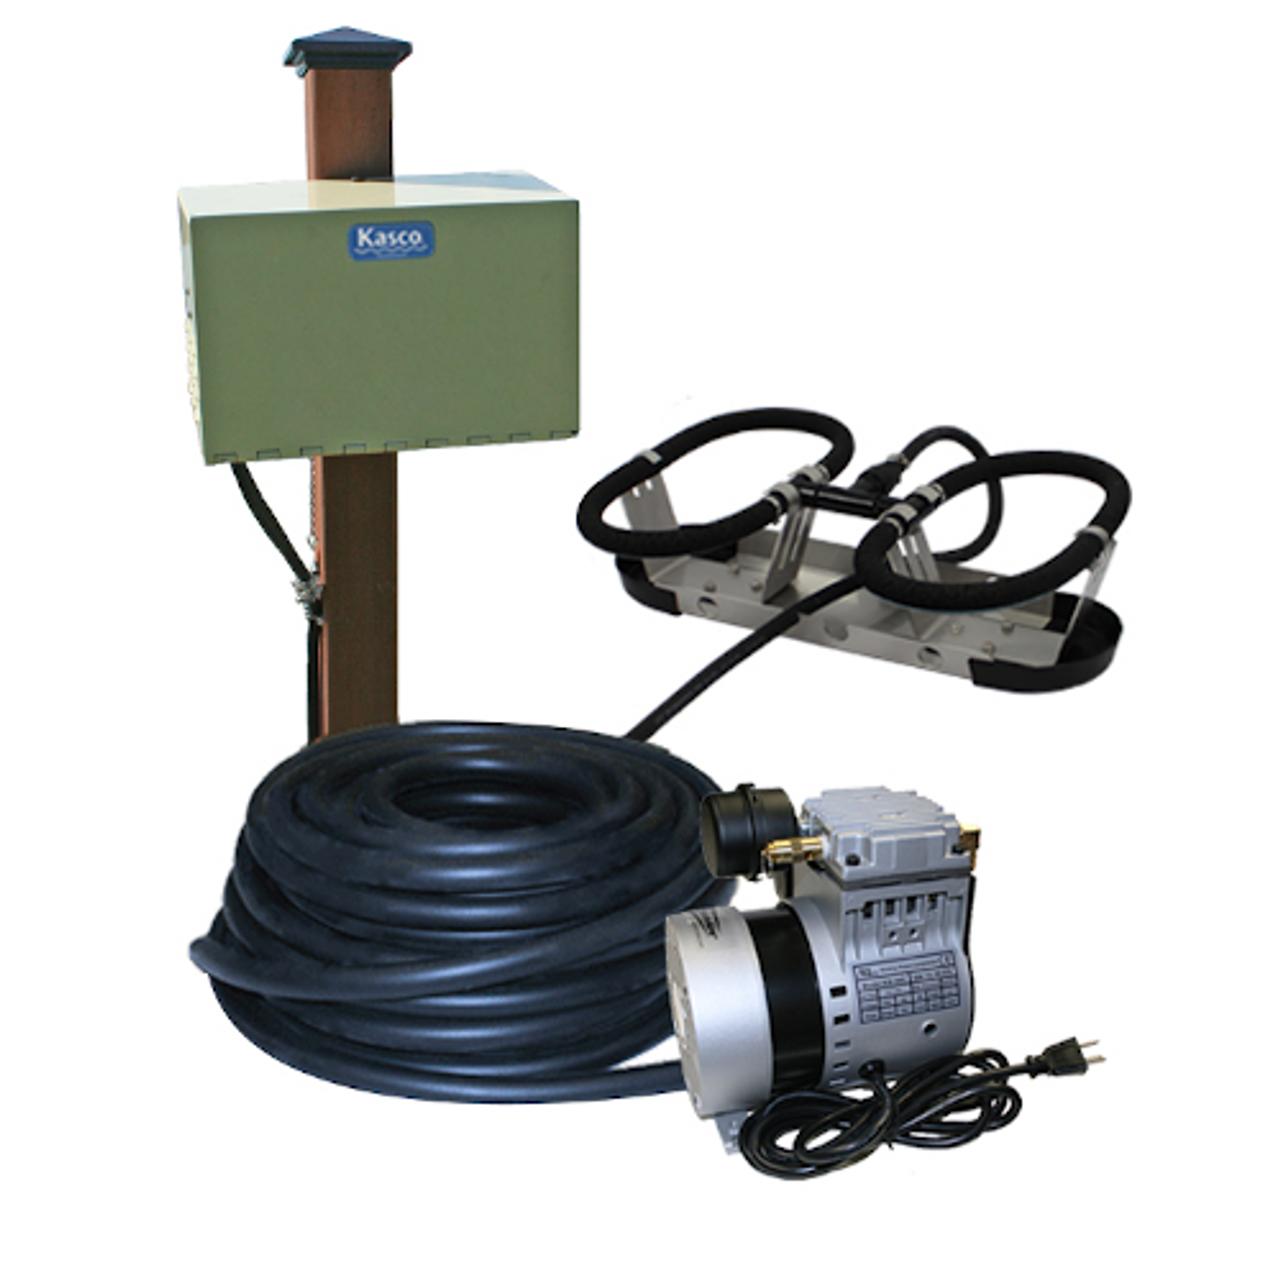 Kasco Robust Aire RA1 Post Mount Cabinet Pond Aeration System